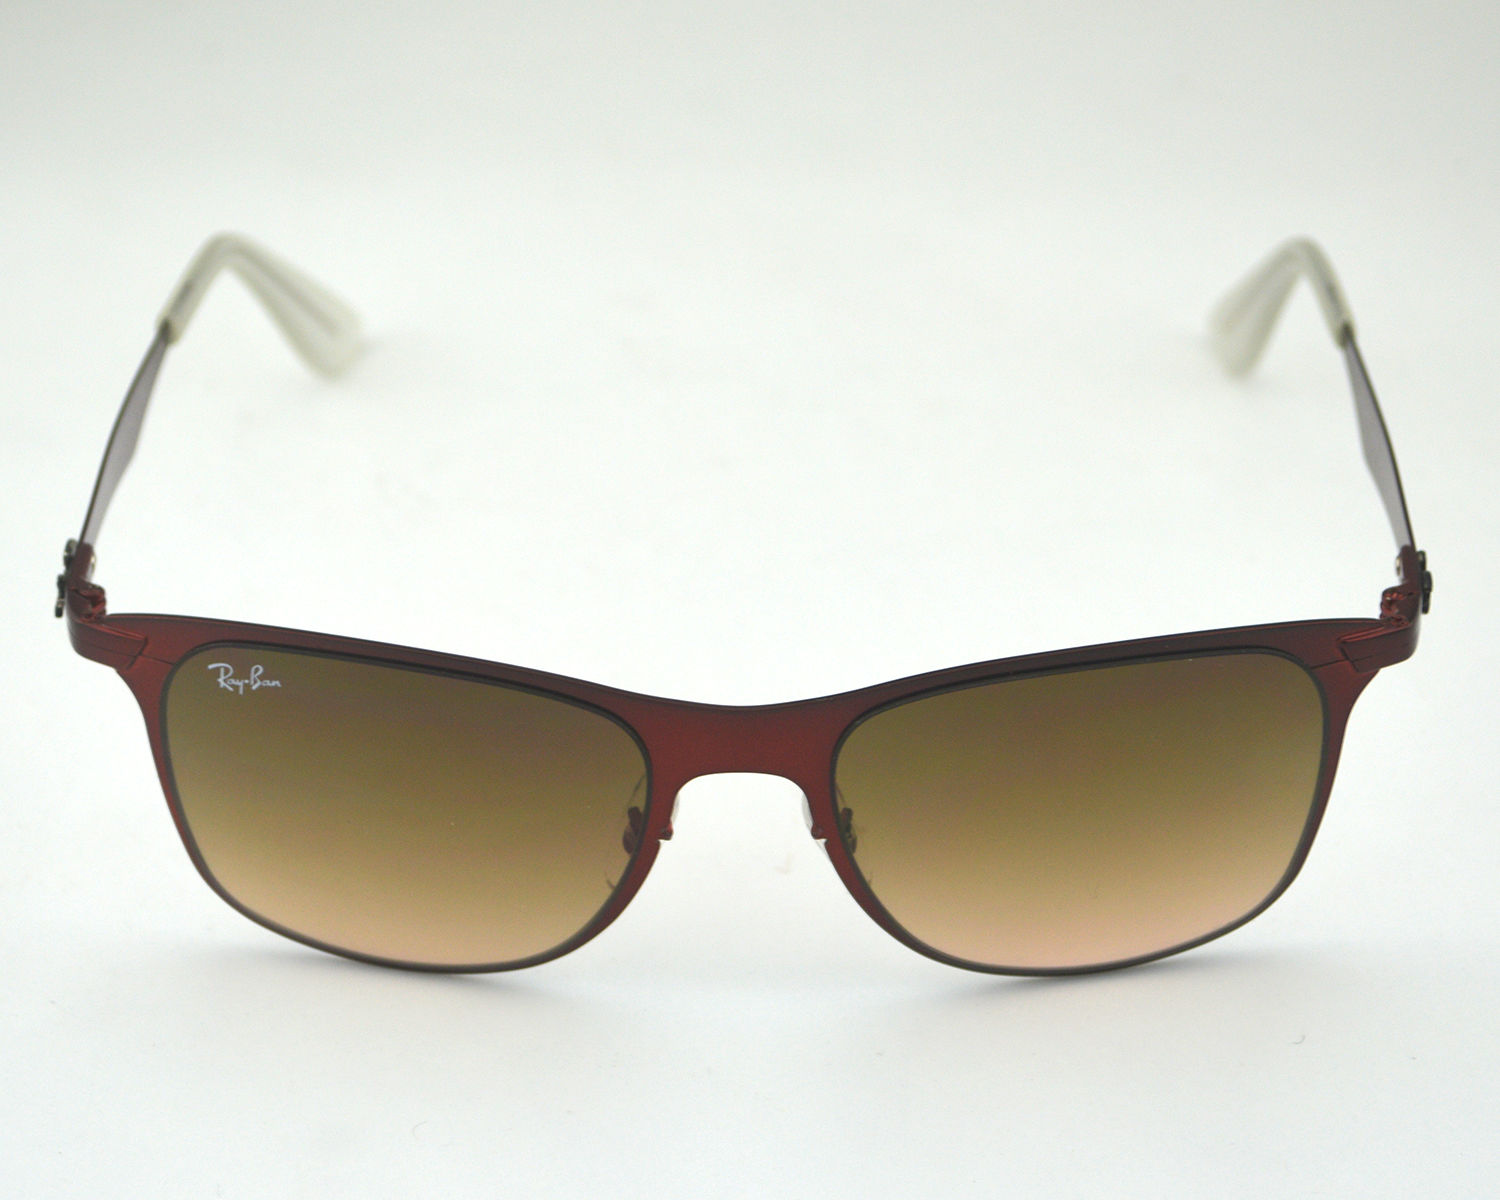 deafa08cf3 Ray Ban RB3521 Wayfarer Flat Metal 162 13 Red  Brown Gradient Lens  Sunglasses 52mm